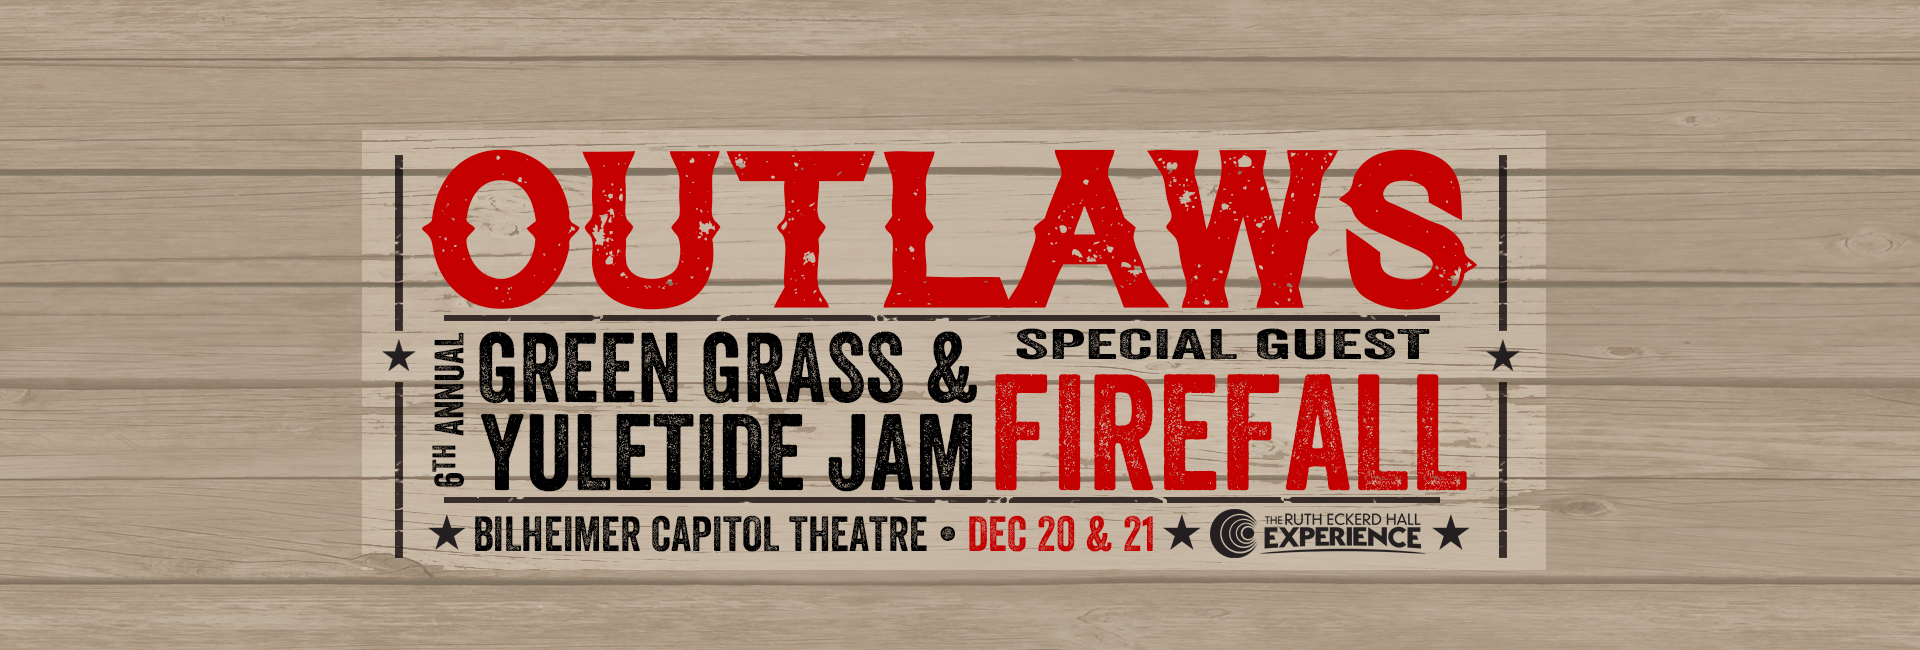 Outlaws Yuletide Jam